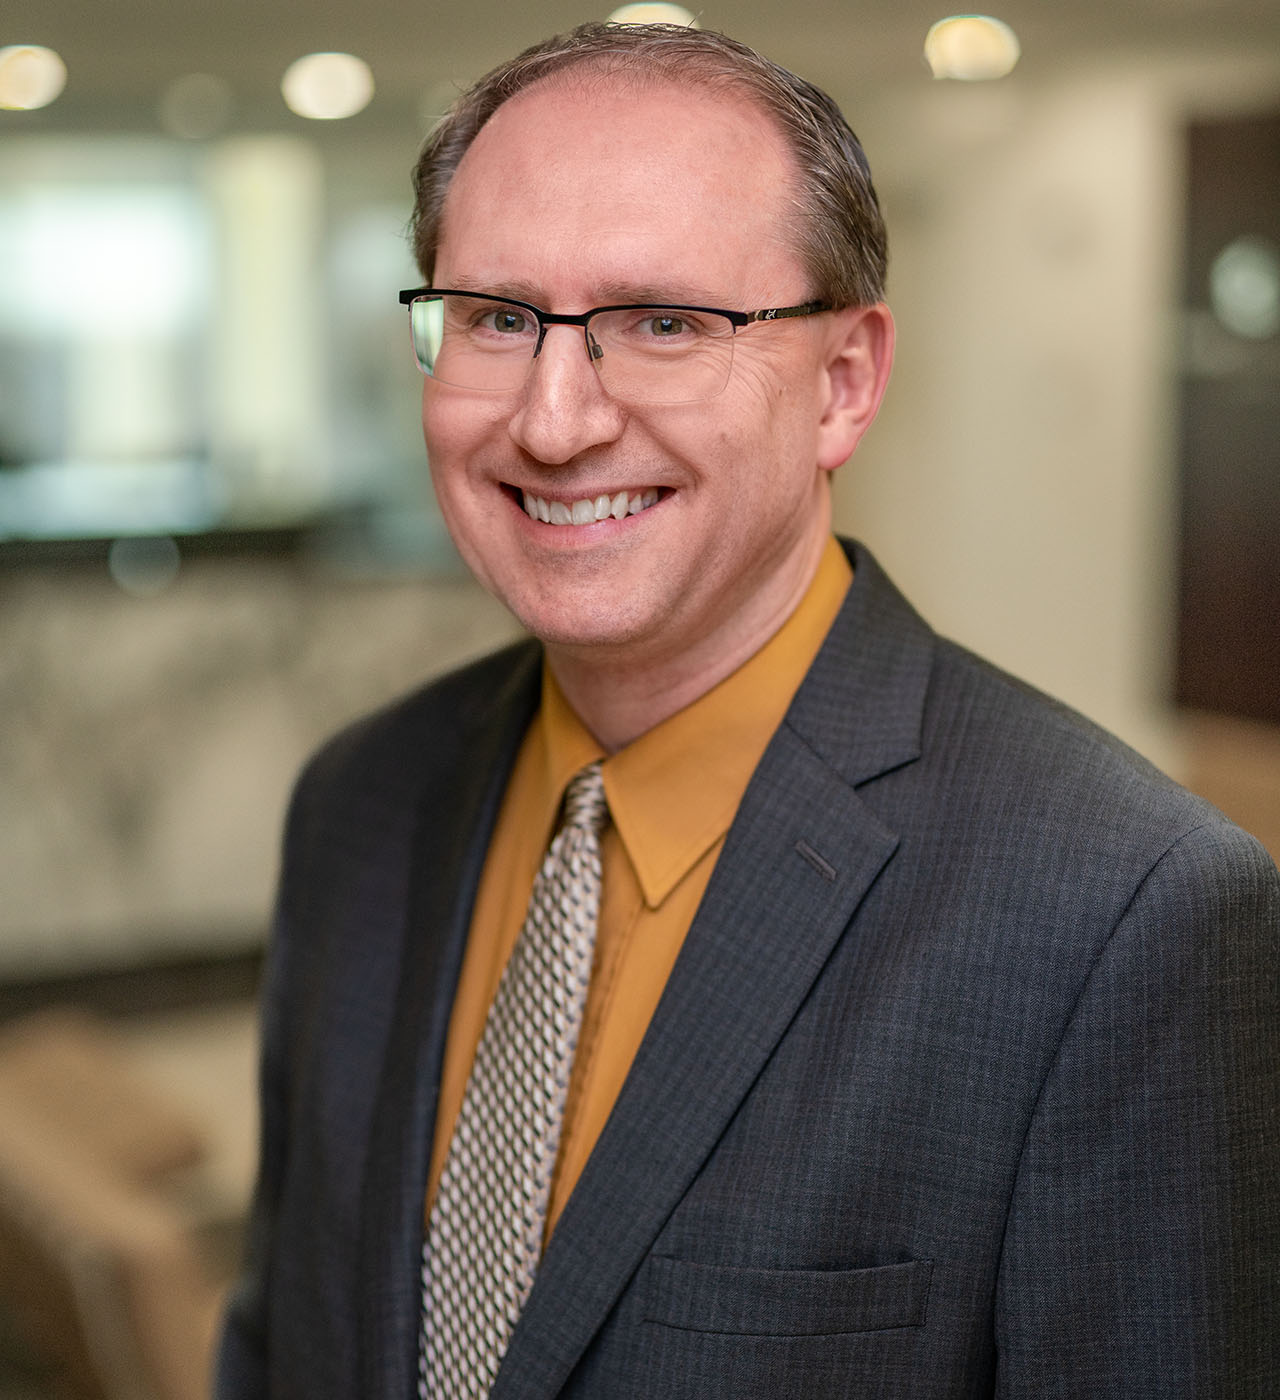 Kirk J. Nordick is a Partner at Kanuka Thuringer LLP